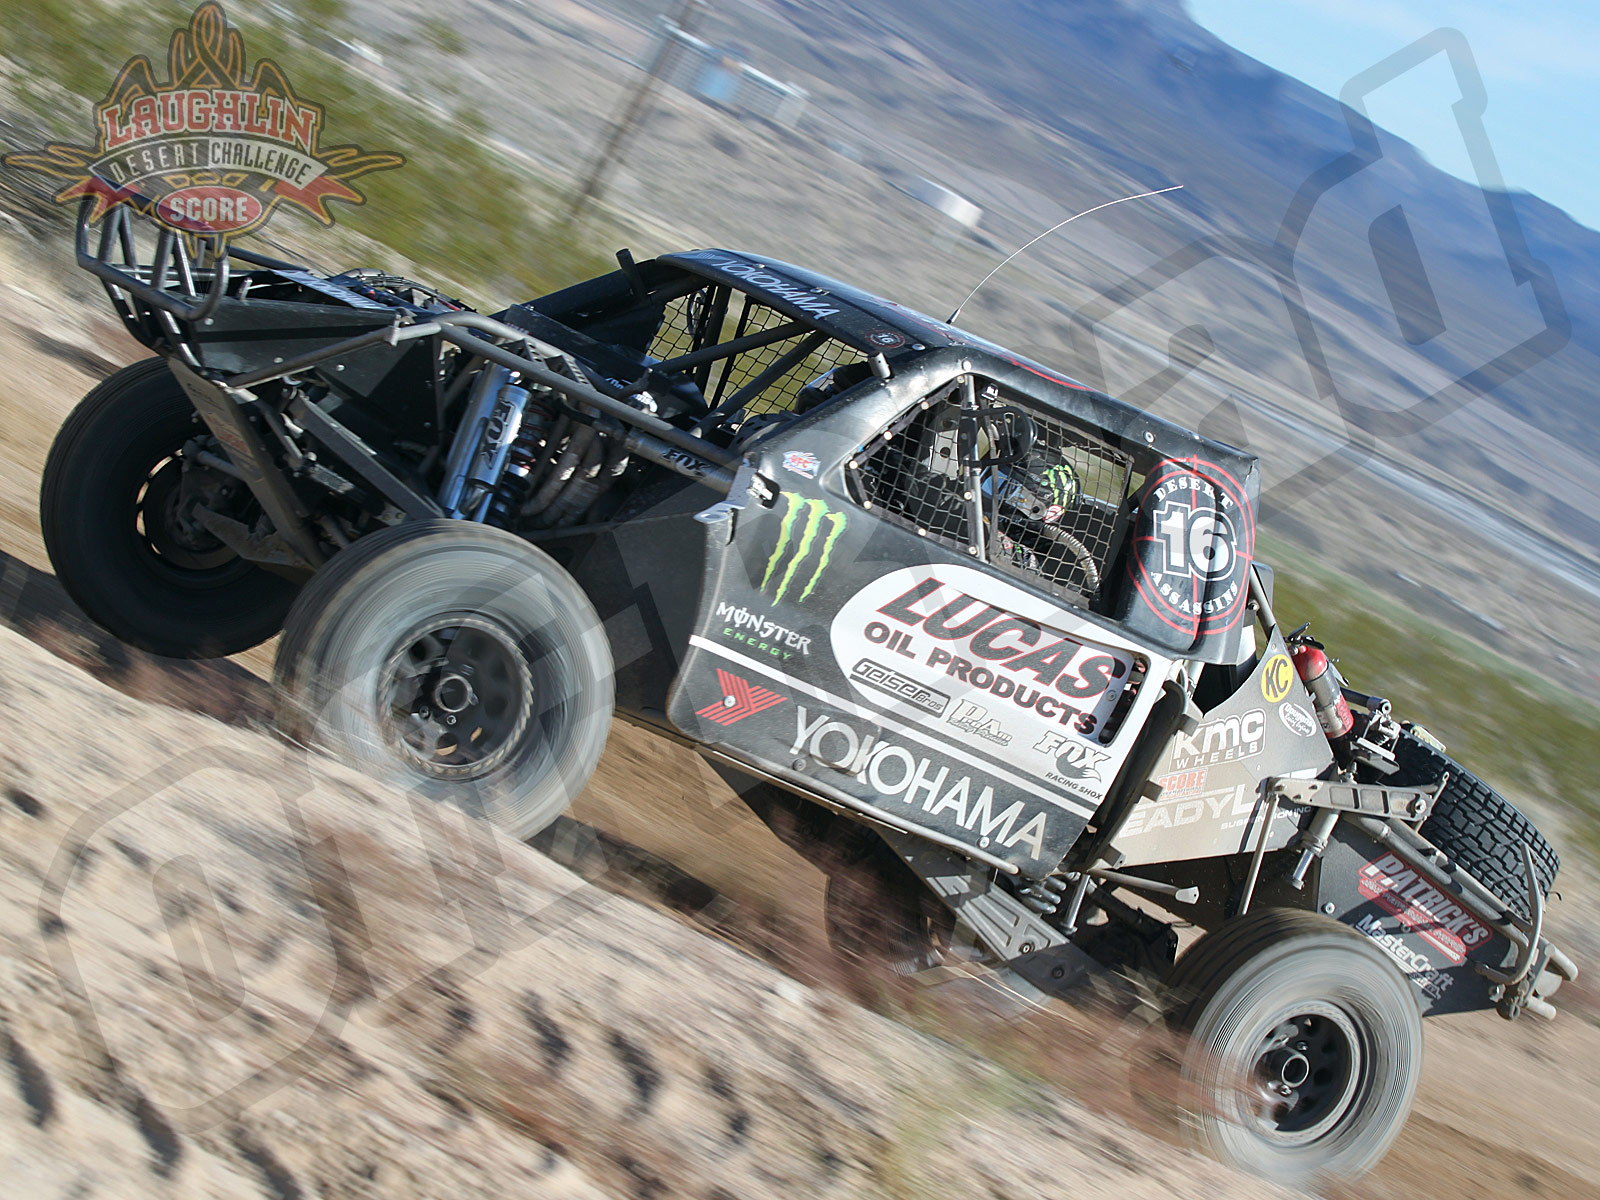 030311or 6857+2011 score laughlin desert challenge+trophy trucks sunday